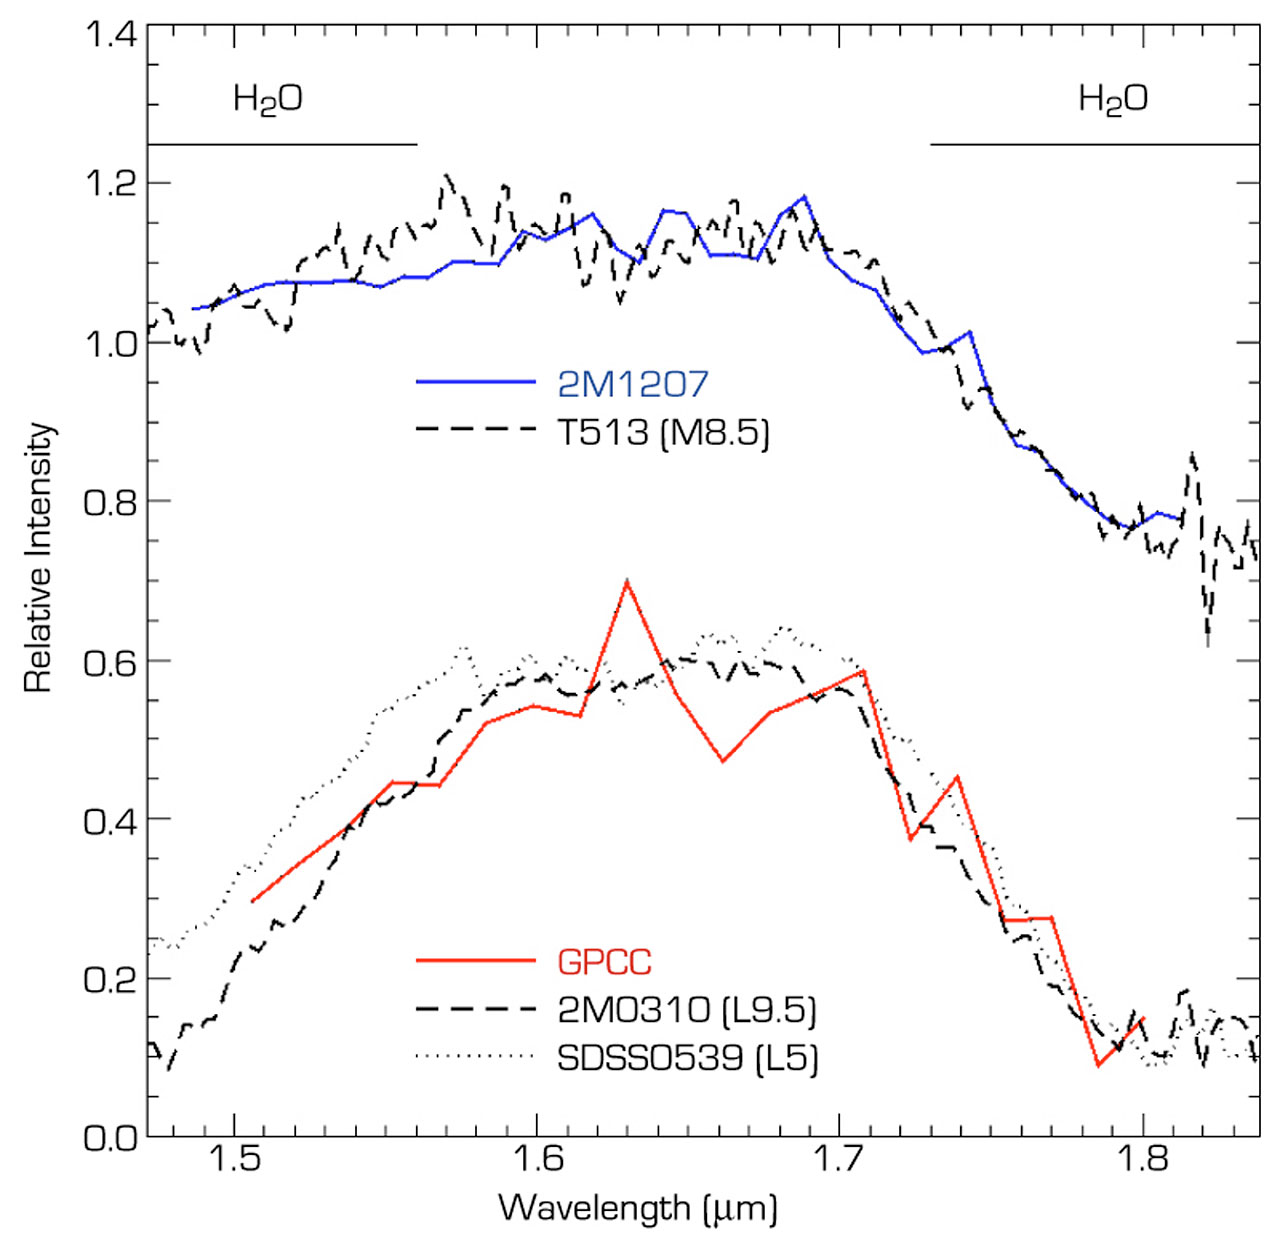 Near-infrared spectrum of the brown dwarf object 2M1207 and GPCC